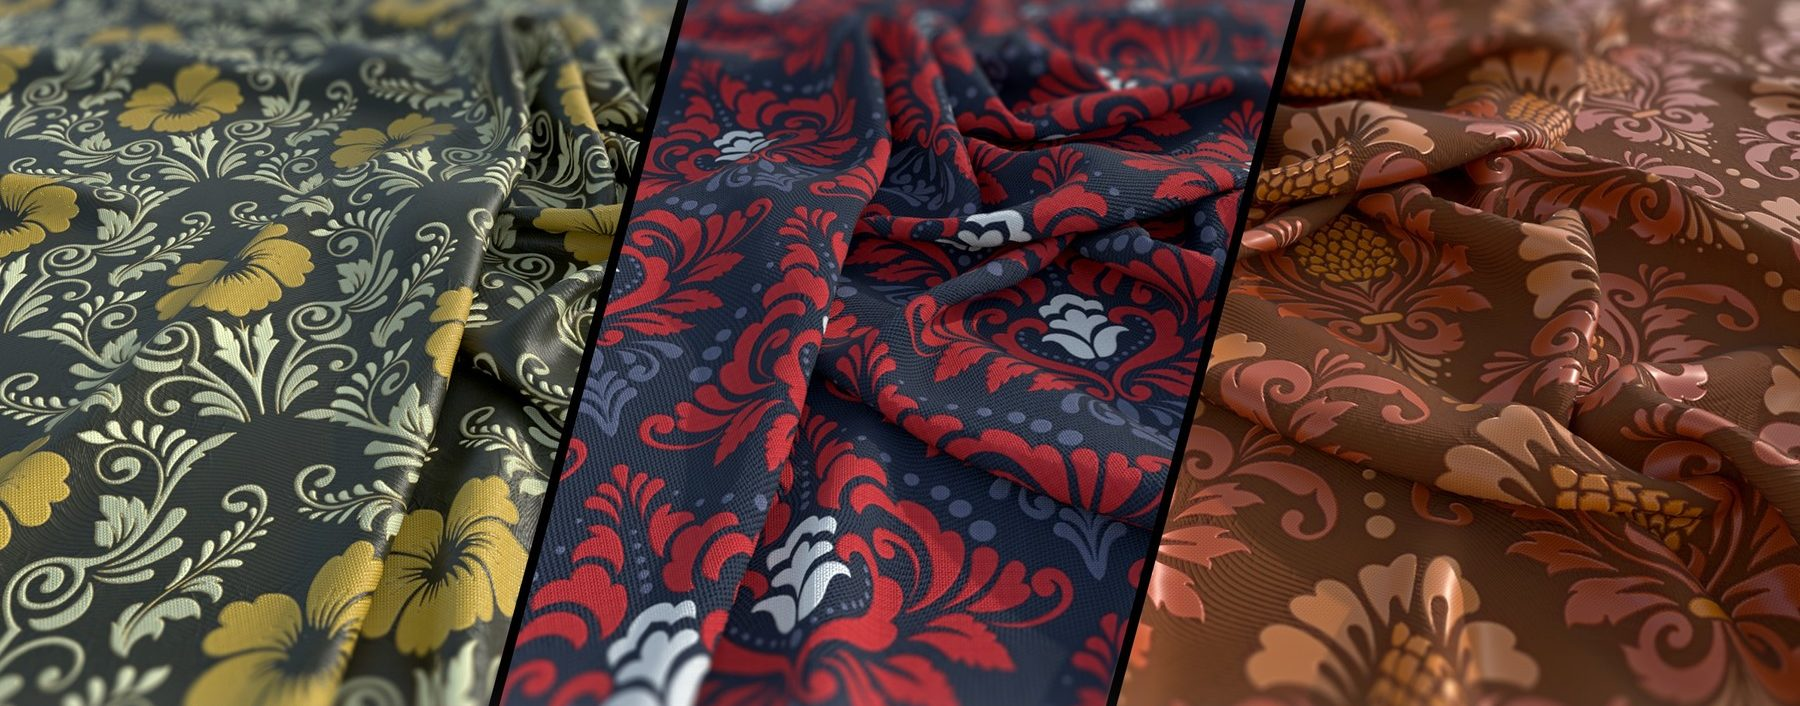 3D rendered fabric